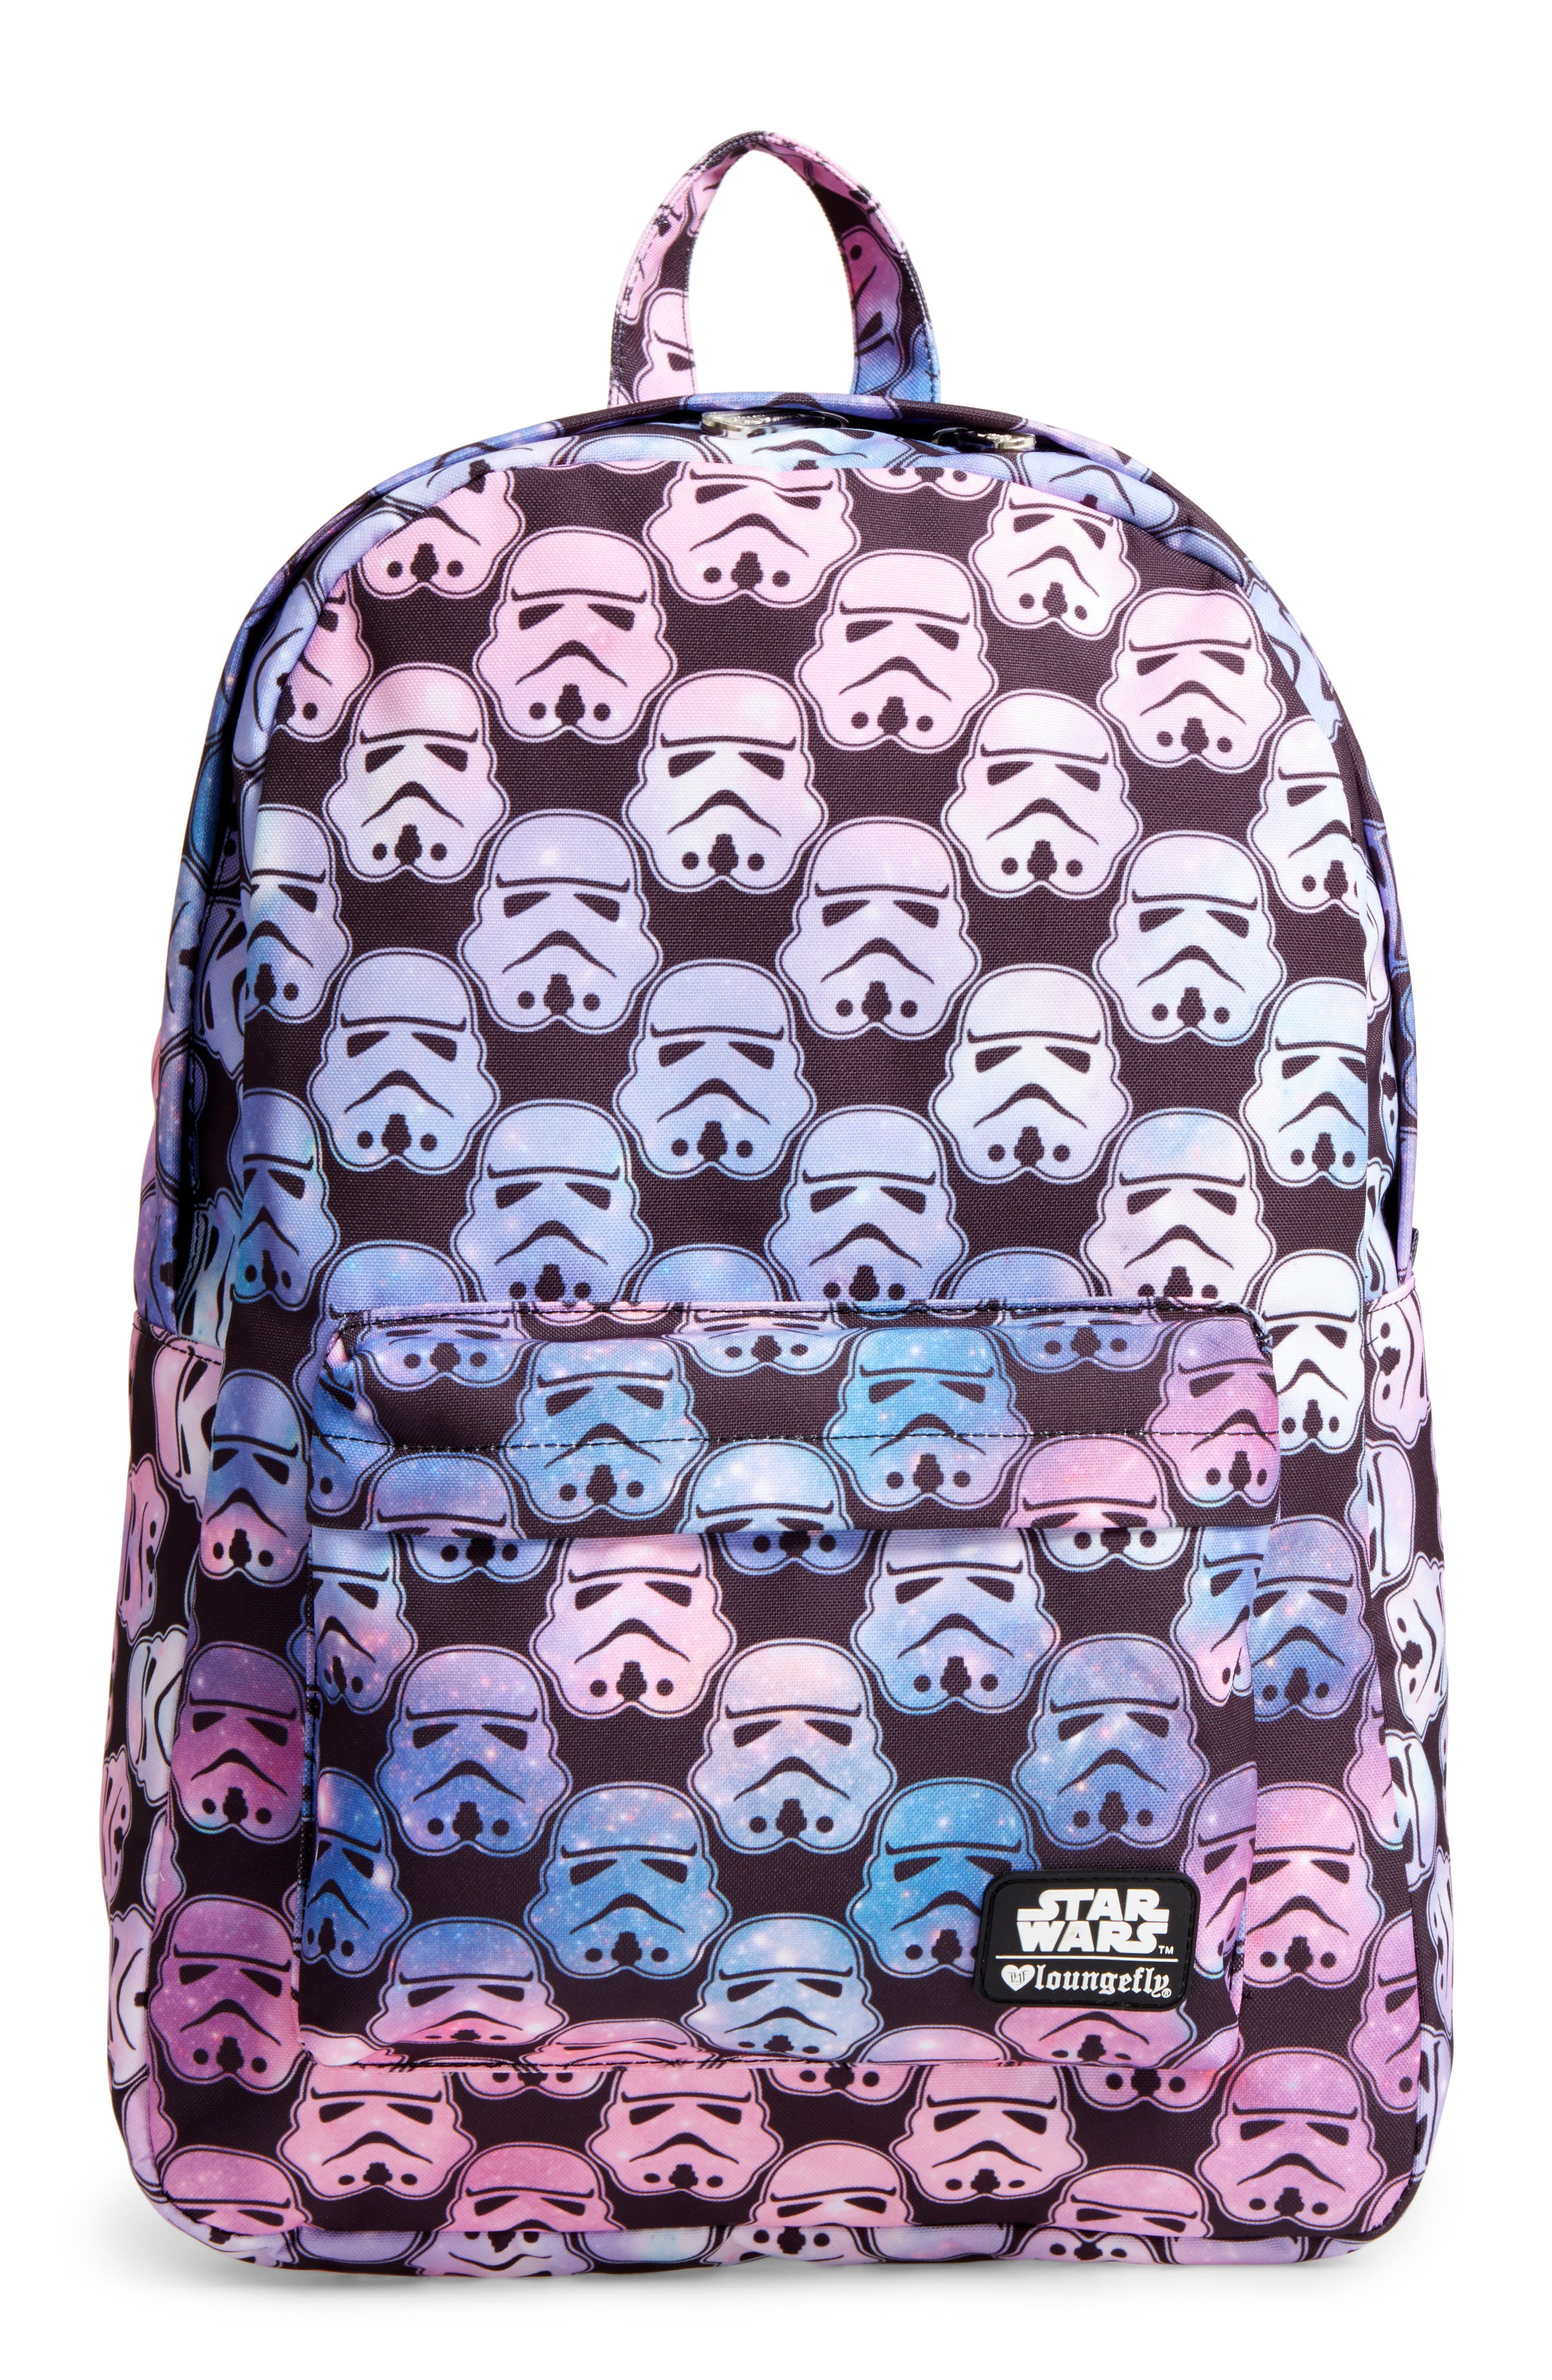 Main Image - Loungefly Star Wars™ Stormtrooper Galaxy Backpack (Kids)